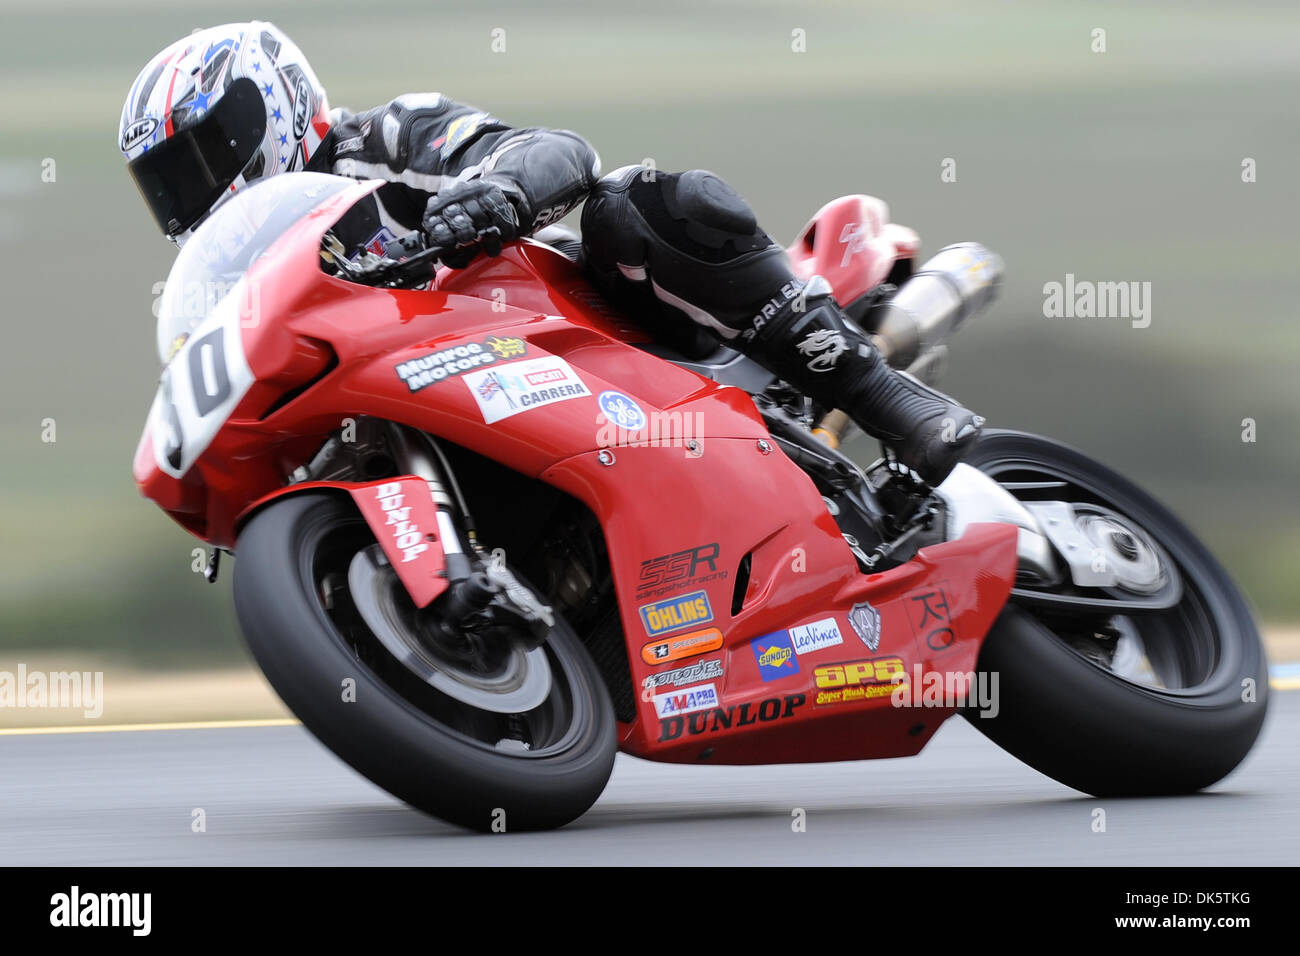 May 14, 2011 - Sonoma, California, United States of America - Nicholas Hayman (30) rides a Ducati 848 during AMA Pro SuperSport qualifying at the West Coast Moto Jam at Infineon Raceway. (Credit Image: © Matt Cohen/Southcreek Global/ZUMAPRESS.com) - Stock Image